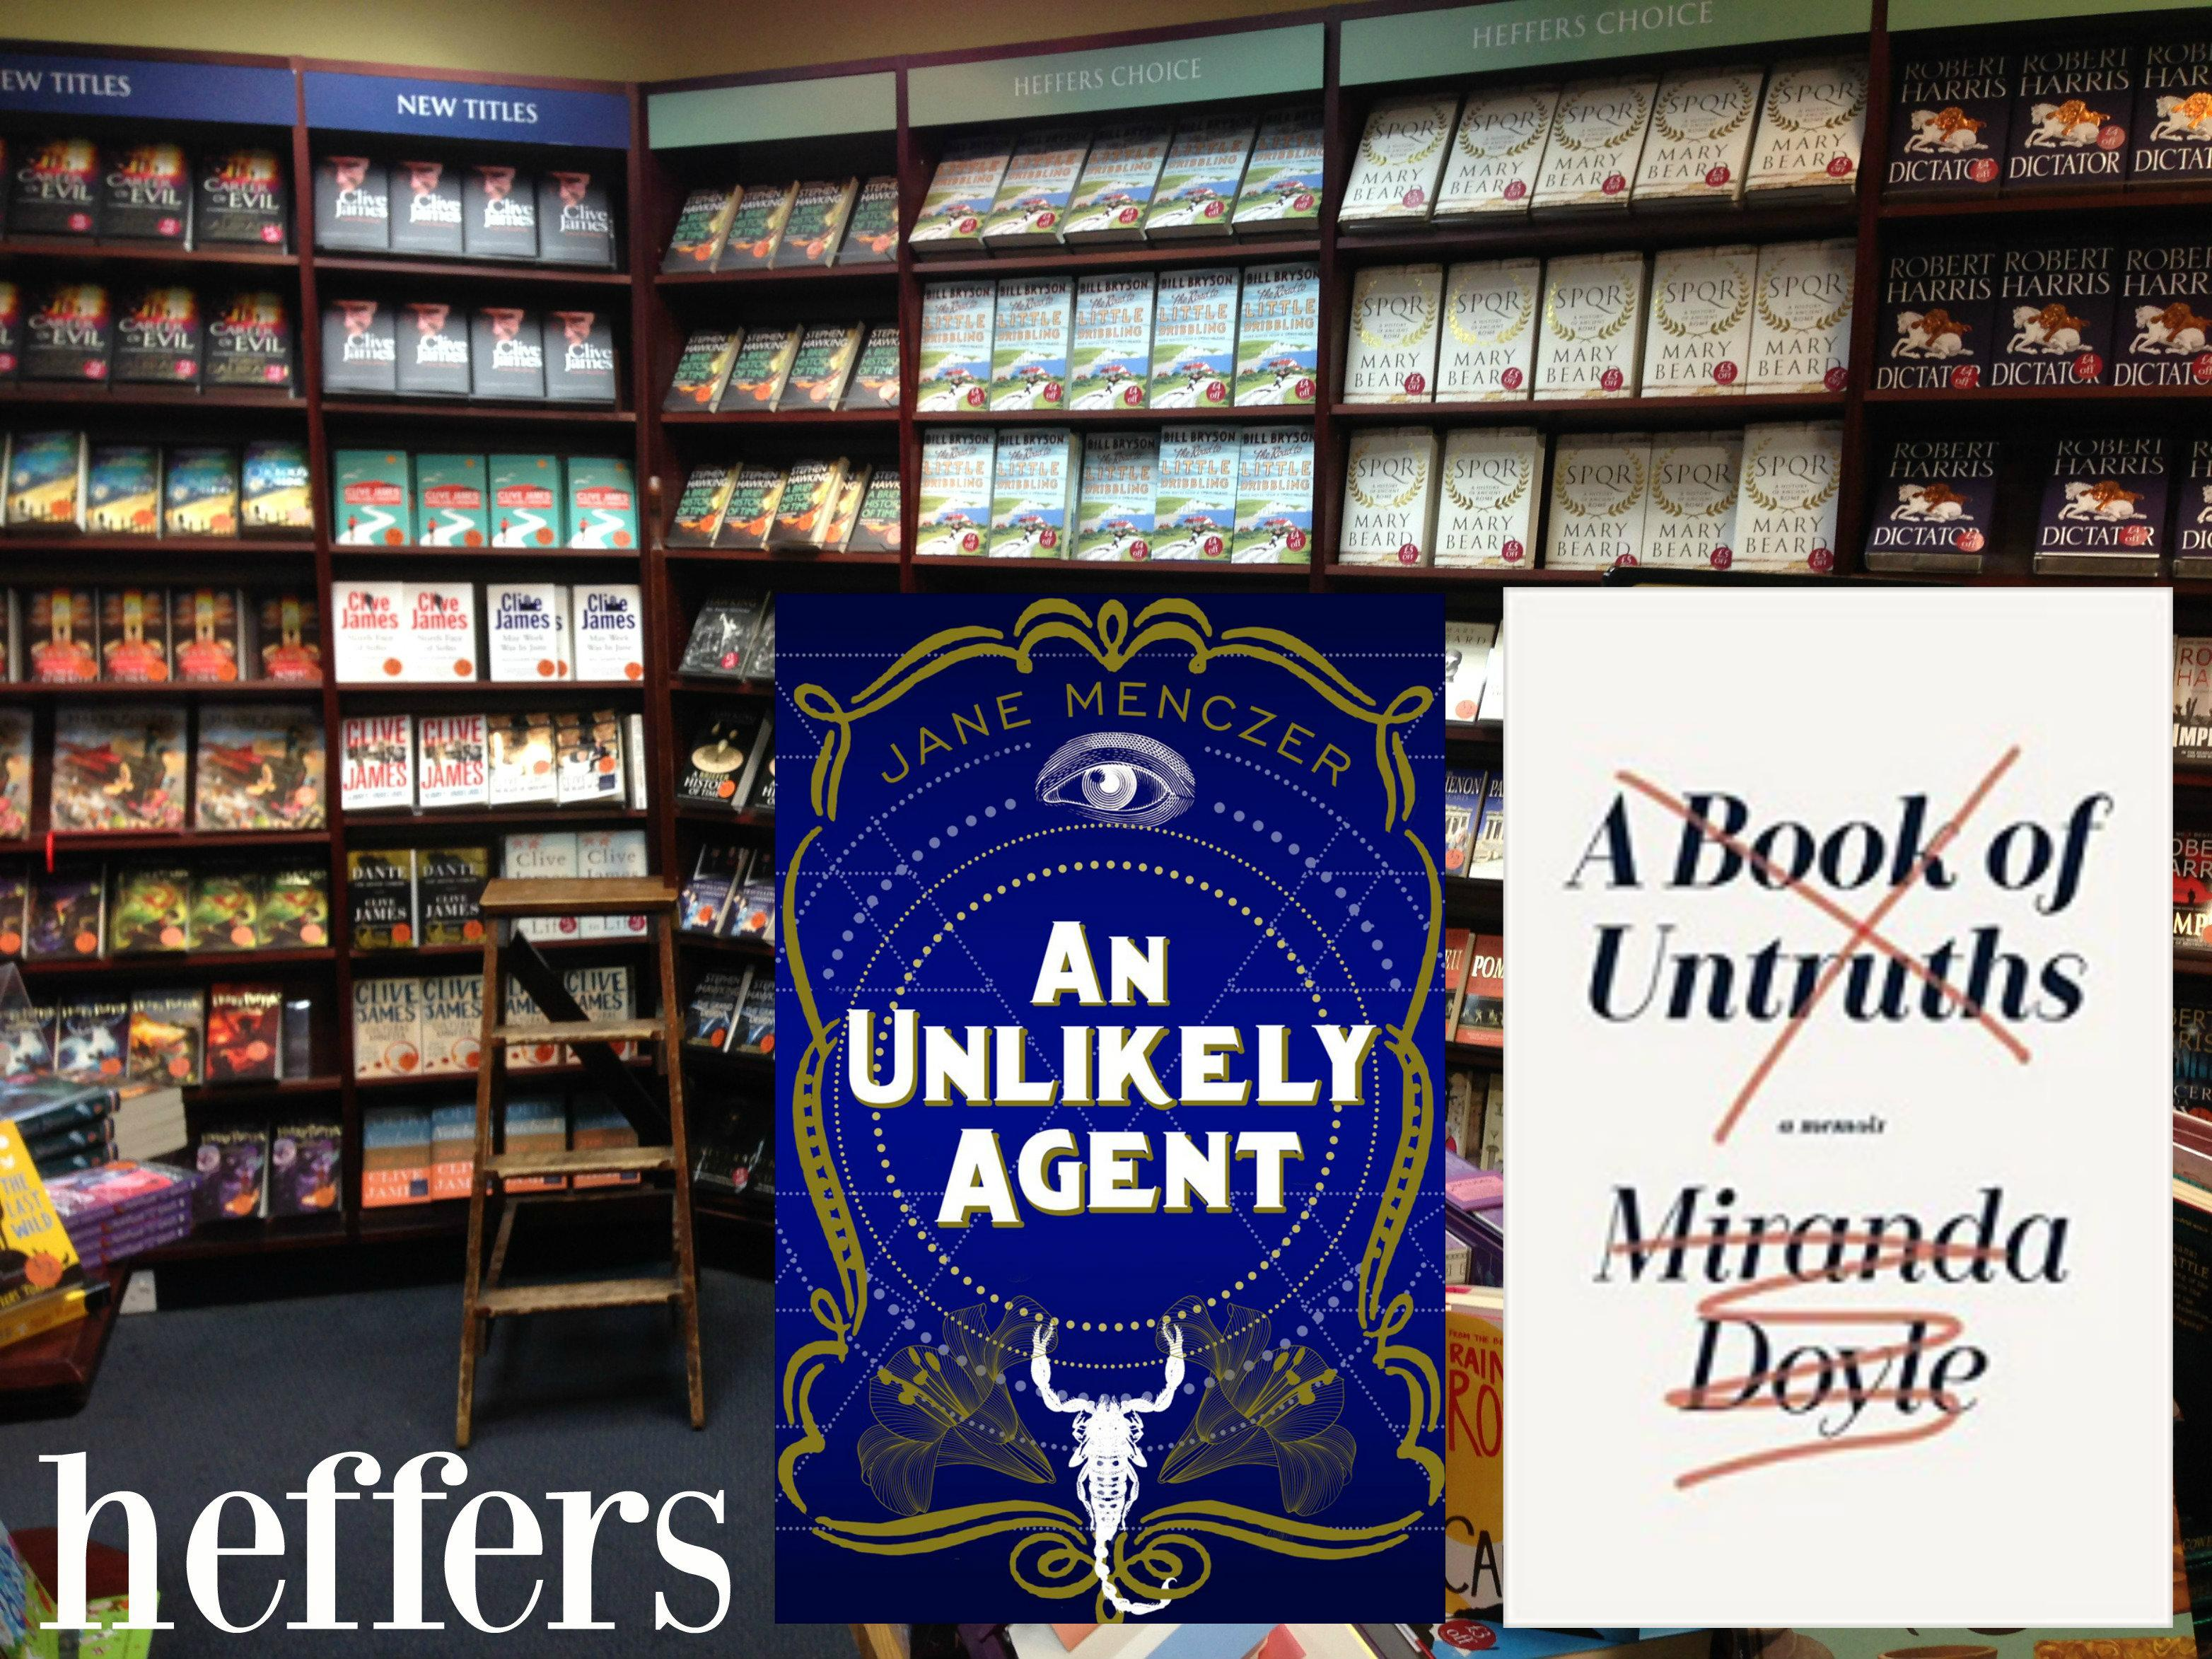 Double launch: 'An Unlikely Agent' and 'A Boo